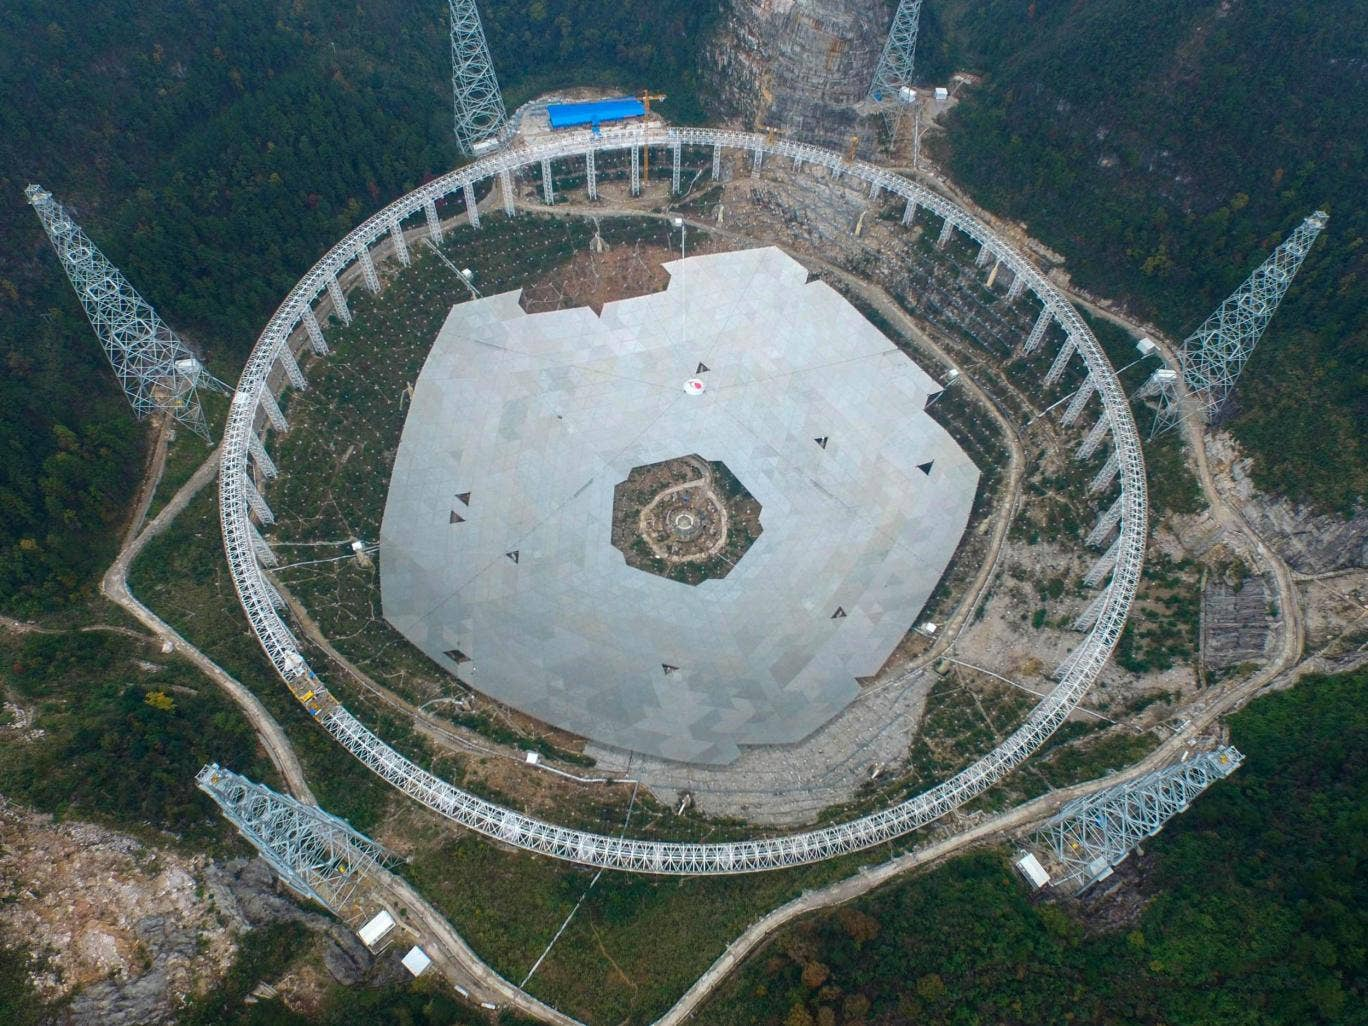 arecibo county dating The eastern country's latest development is similar in appearance to the arecibo telescope in  is located in pingtang county,  dating back to the reign of.